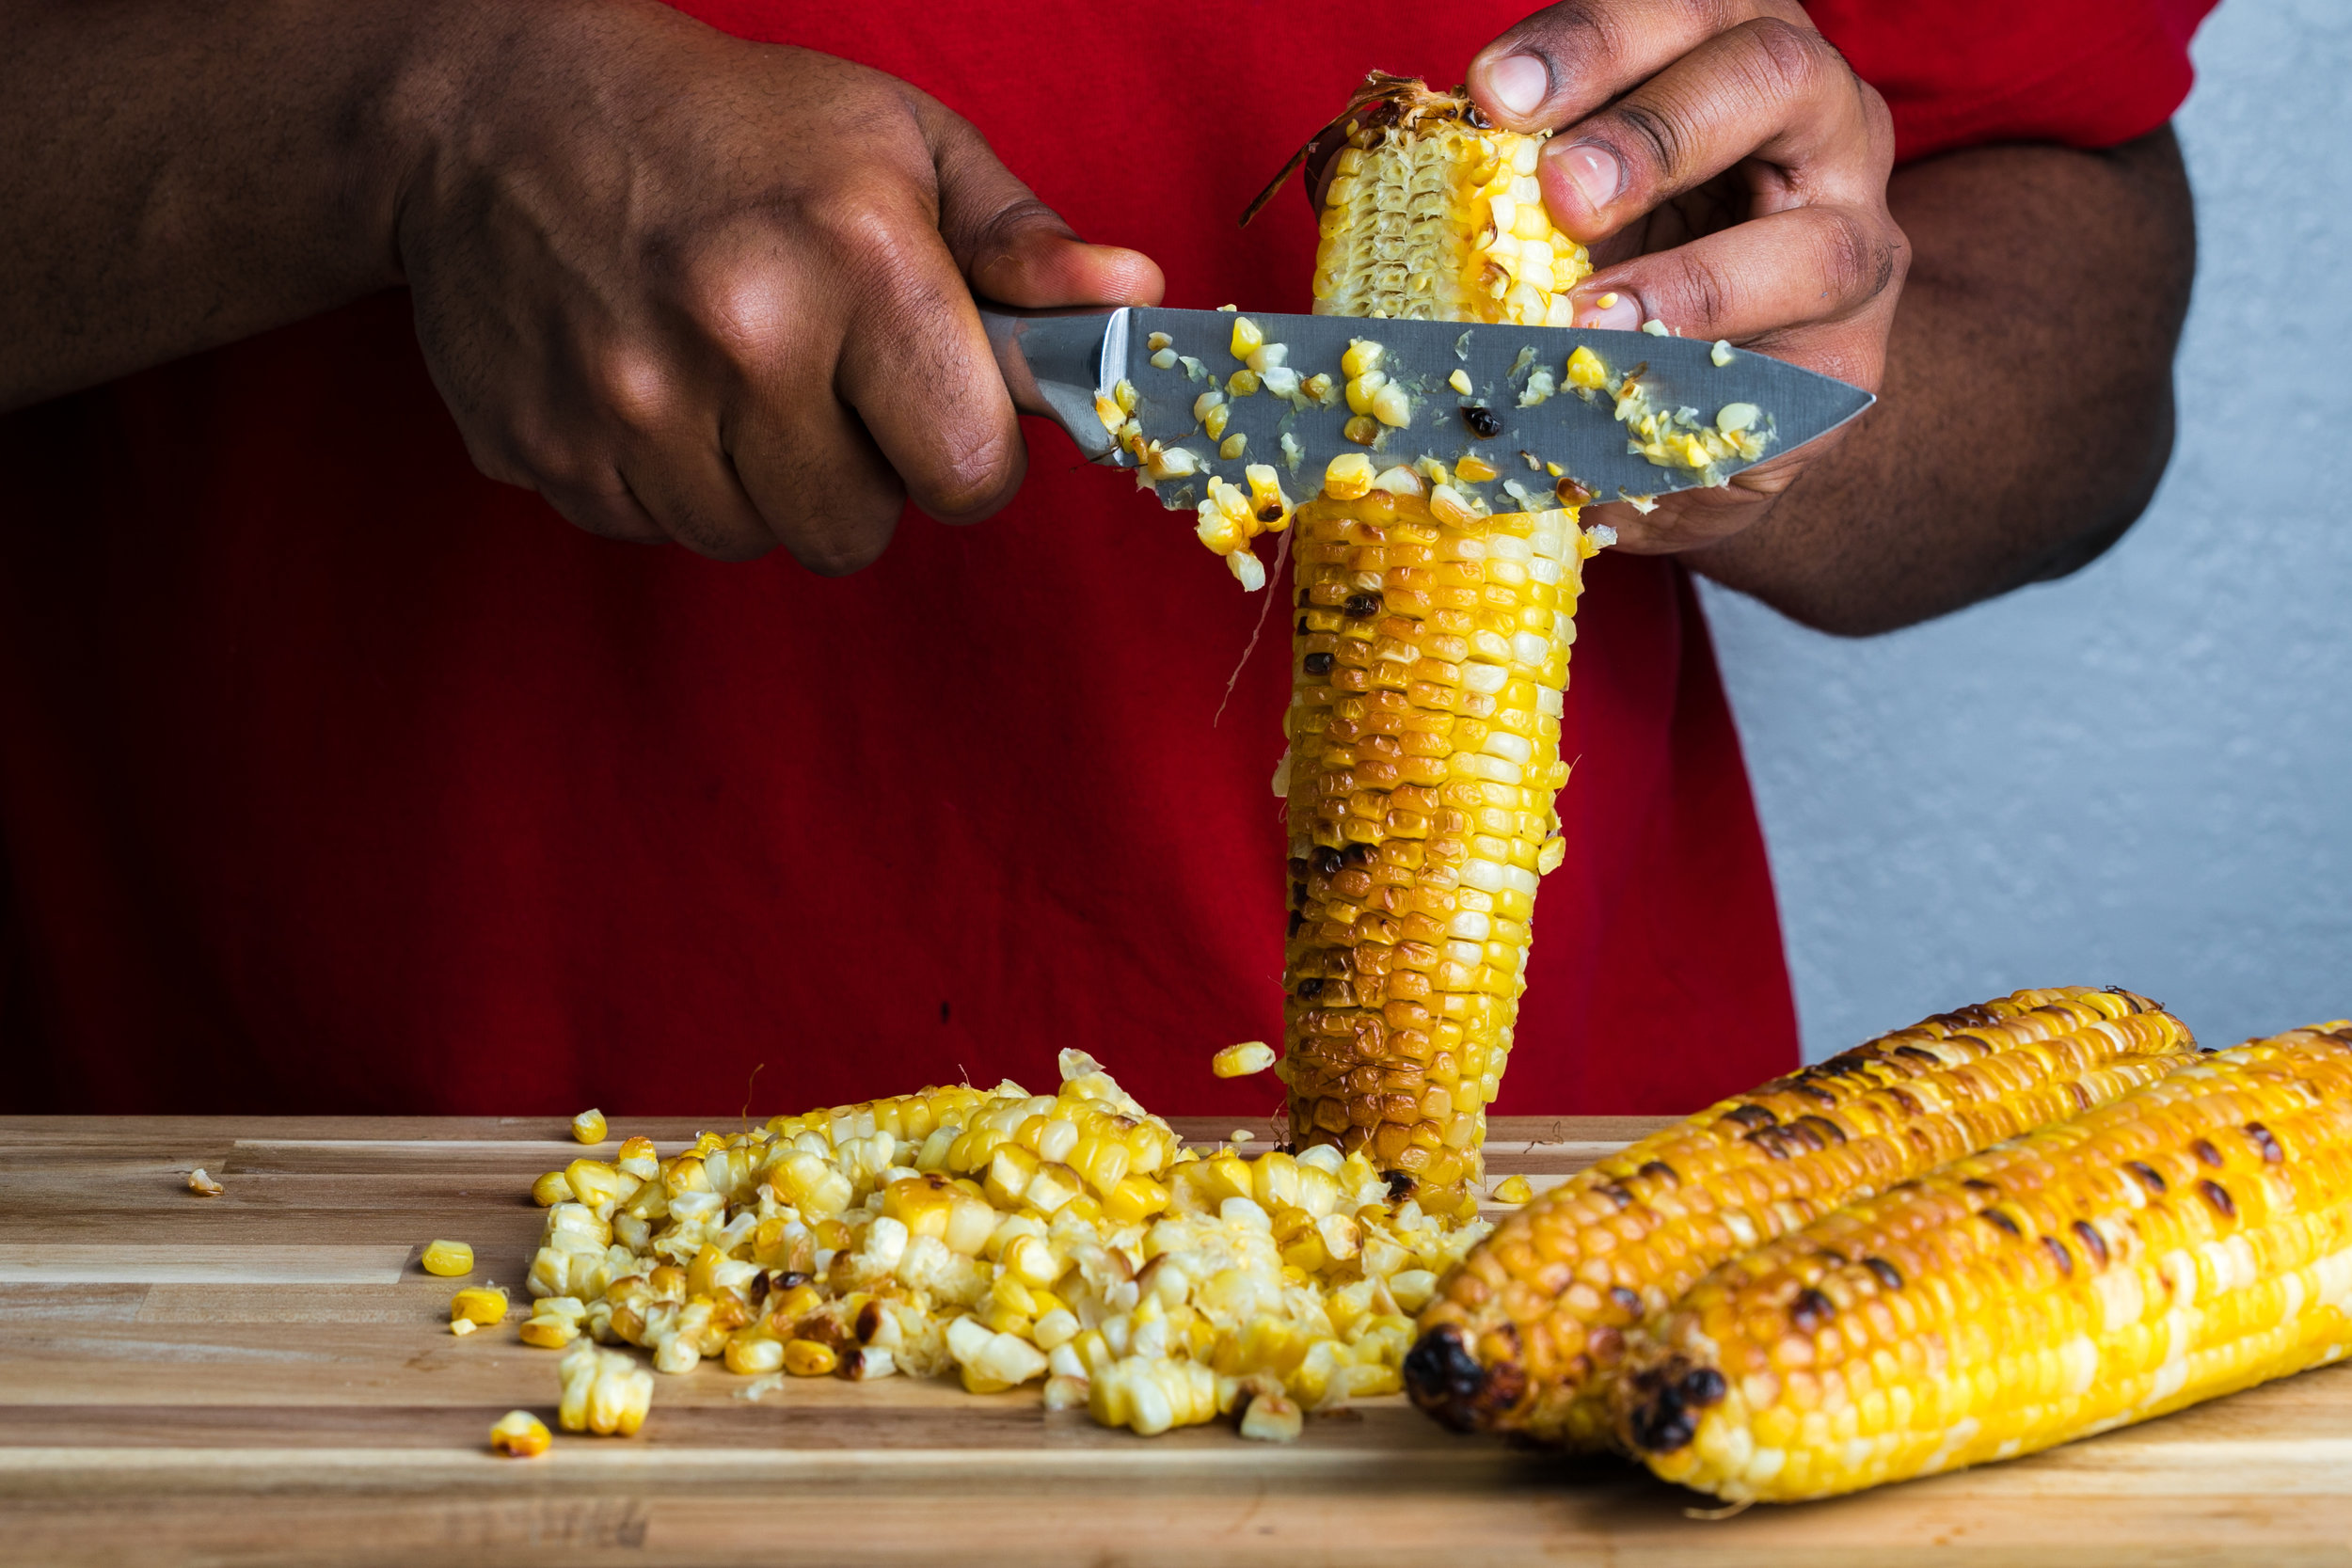 Whole Foods Market's organic sweet corn on the cob only requires a light drizzle of olive oil and20 minutes in the ovento get the perfect char!